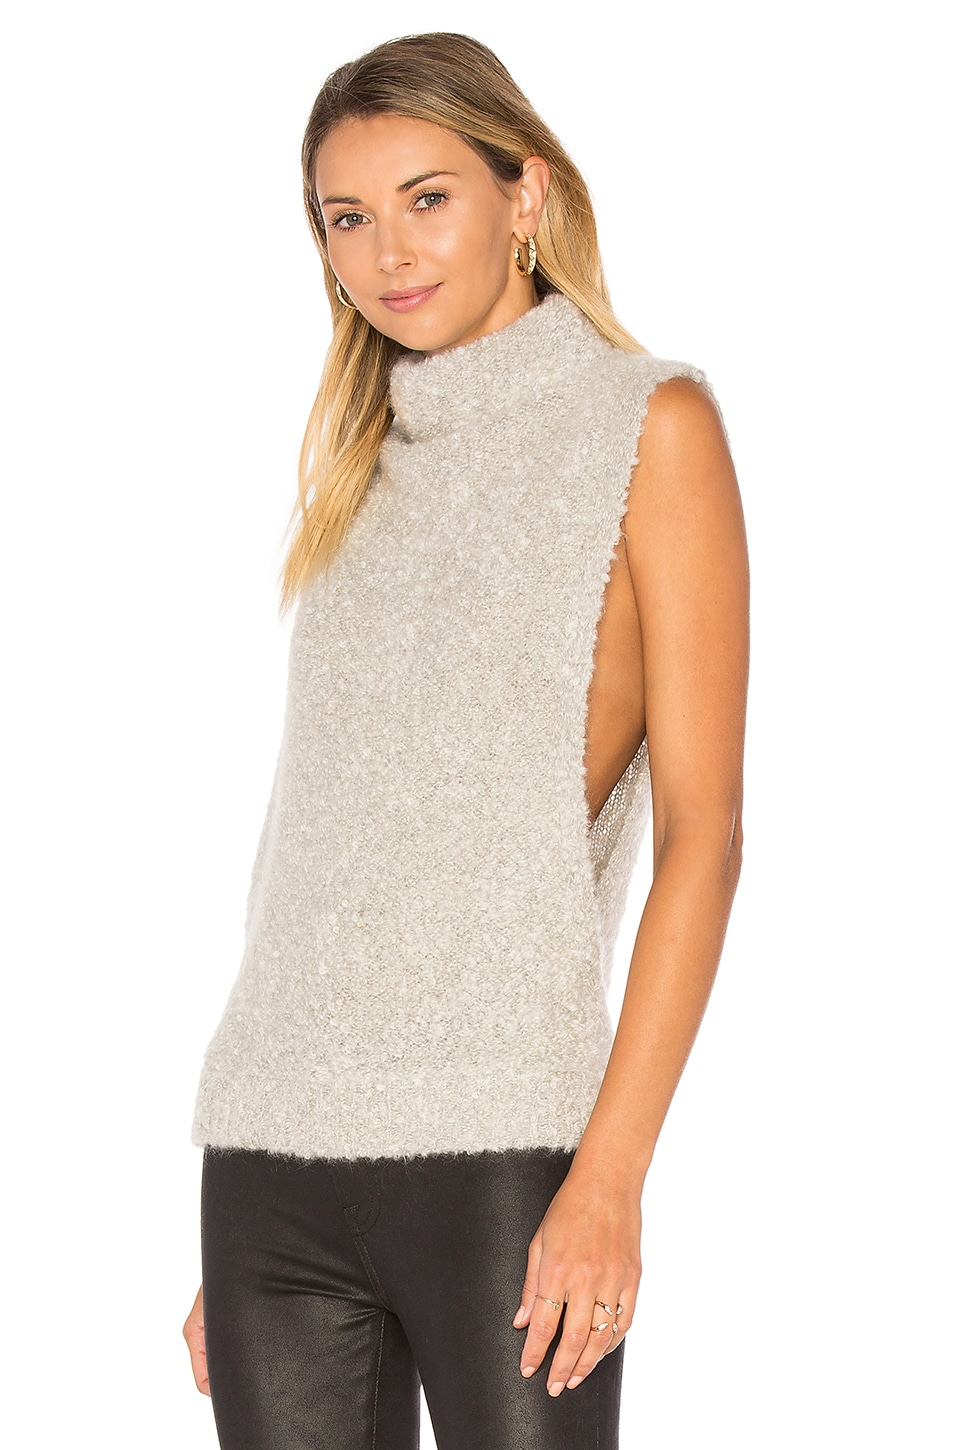 Boucle Funnel Neck Sweater by Autumn Cashmere